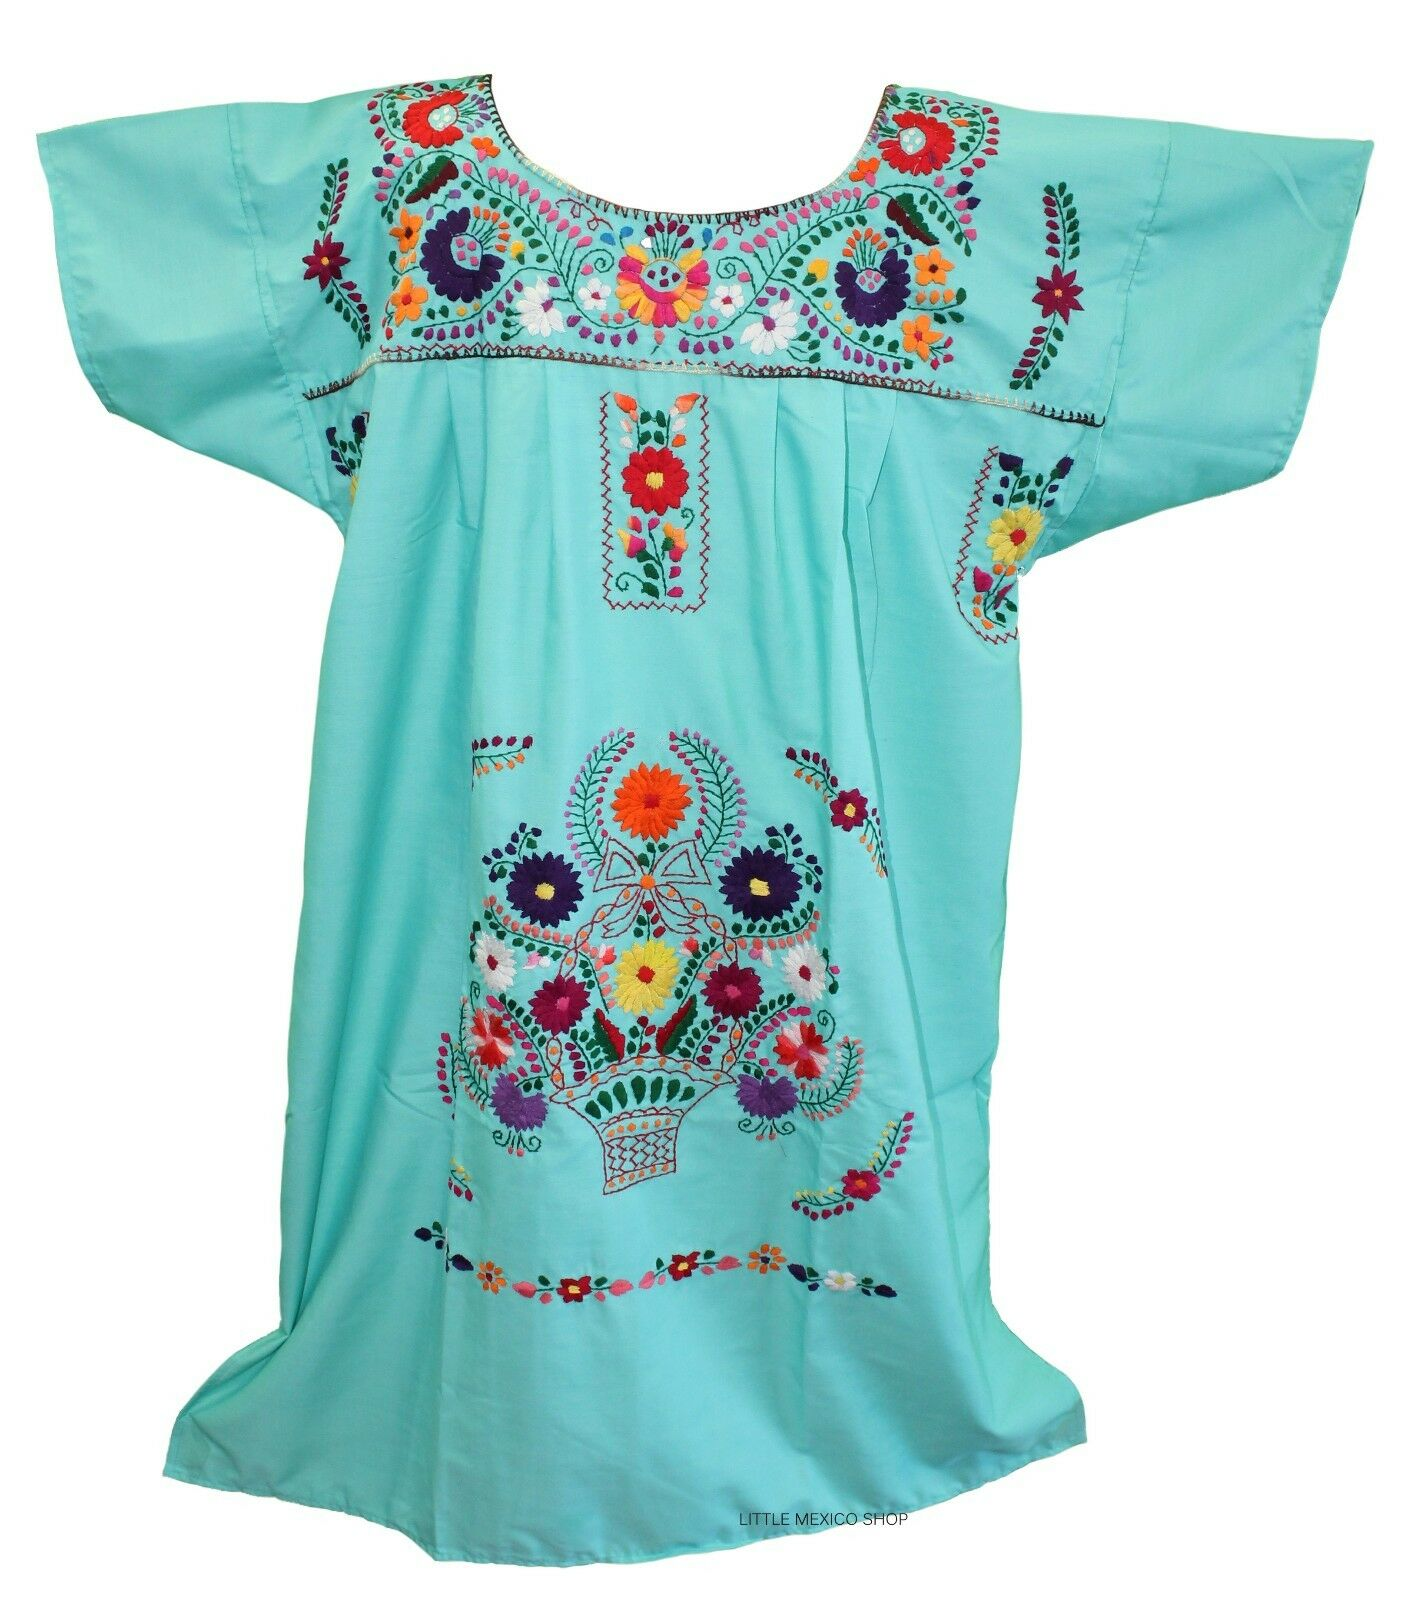 3XL Mexican Dress SPRING TEAL Hand Embroidered Embroidered Embroidered Puebla Pueblo Unique 203 974ff1